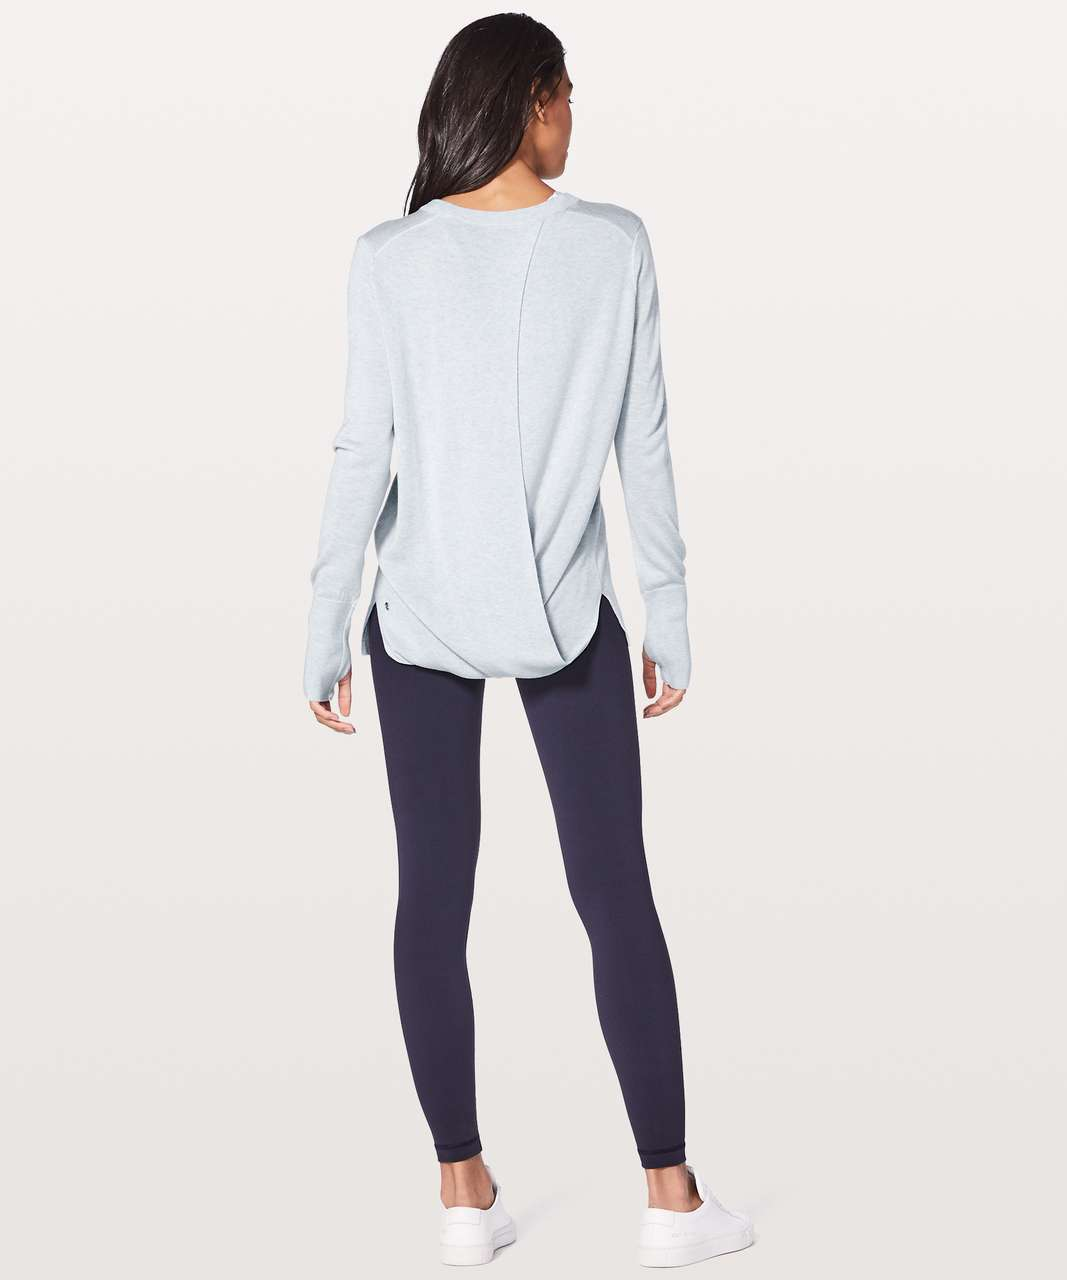 Lululemon Bring It Backbend Sweater - Heathered Alpine White